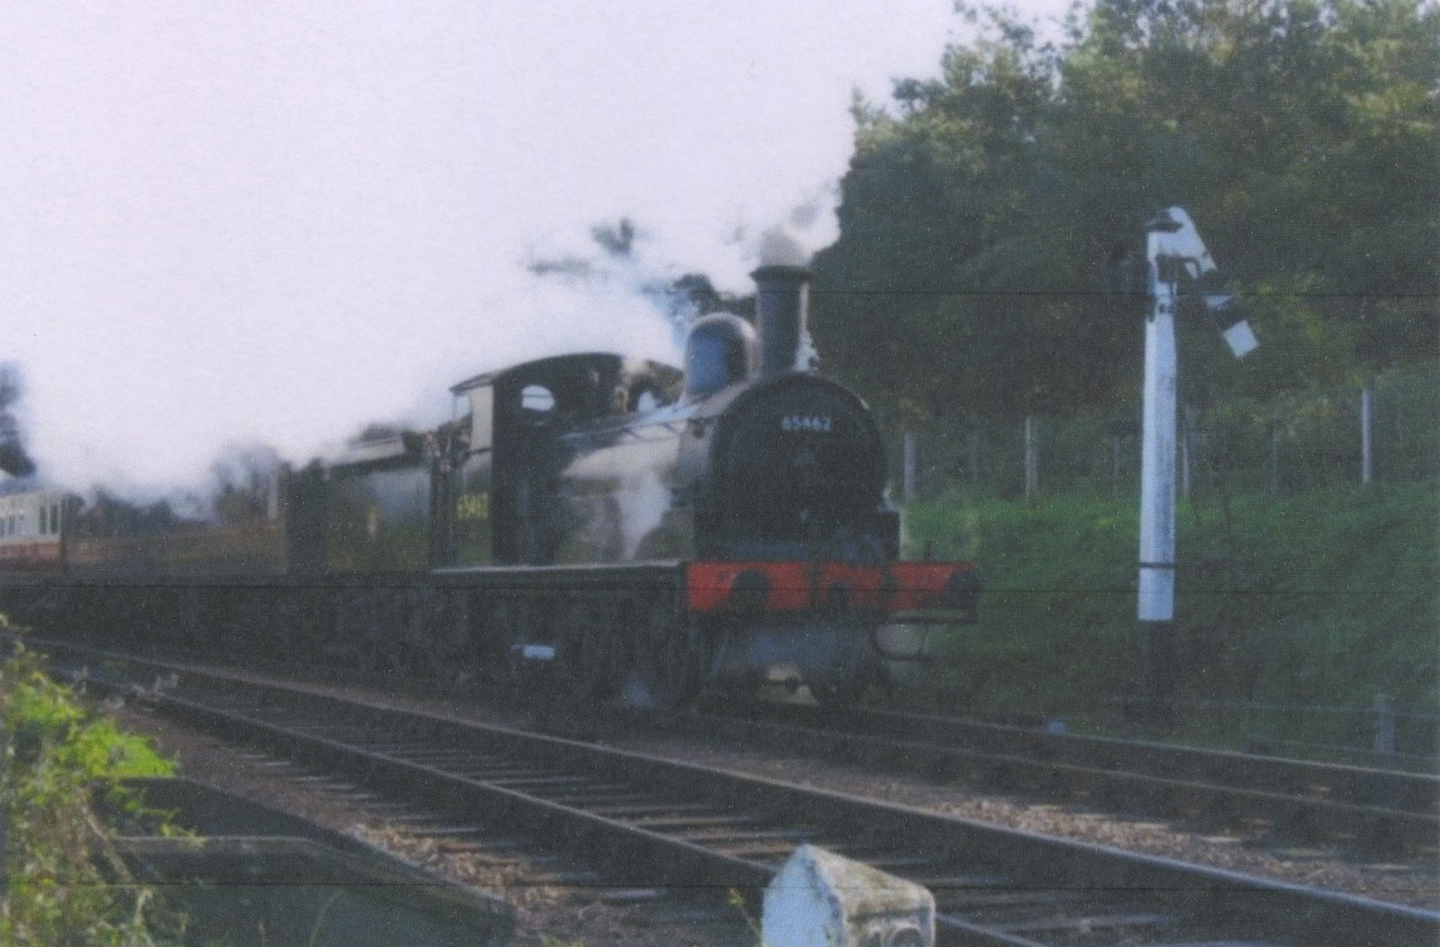 J15 class 0-6-0 steam loco of the type using the line